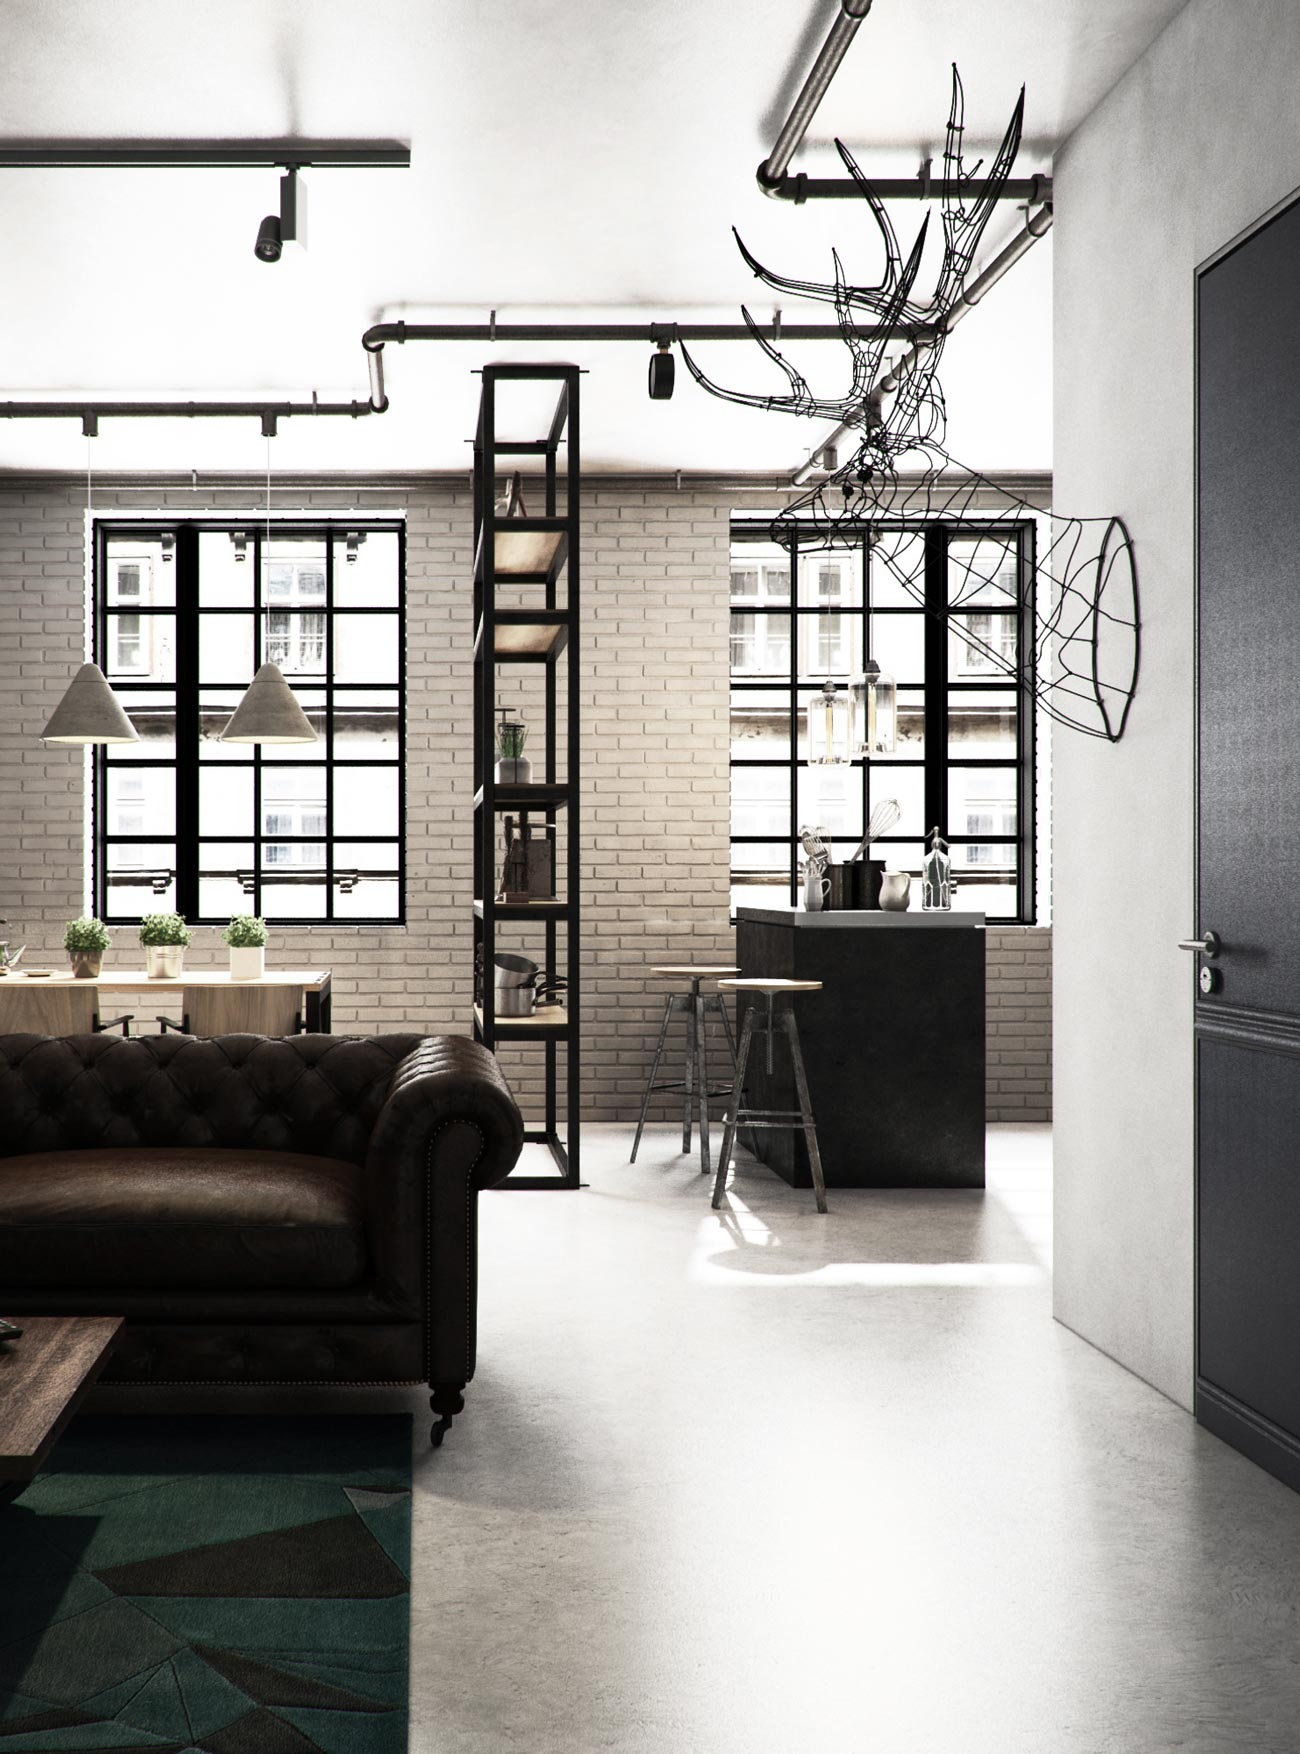 Vwartclub Industrial Apartment